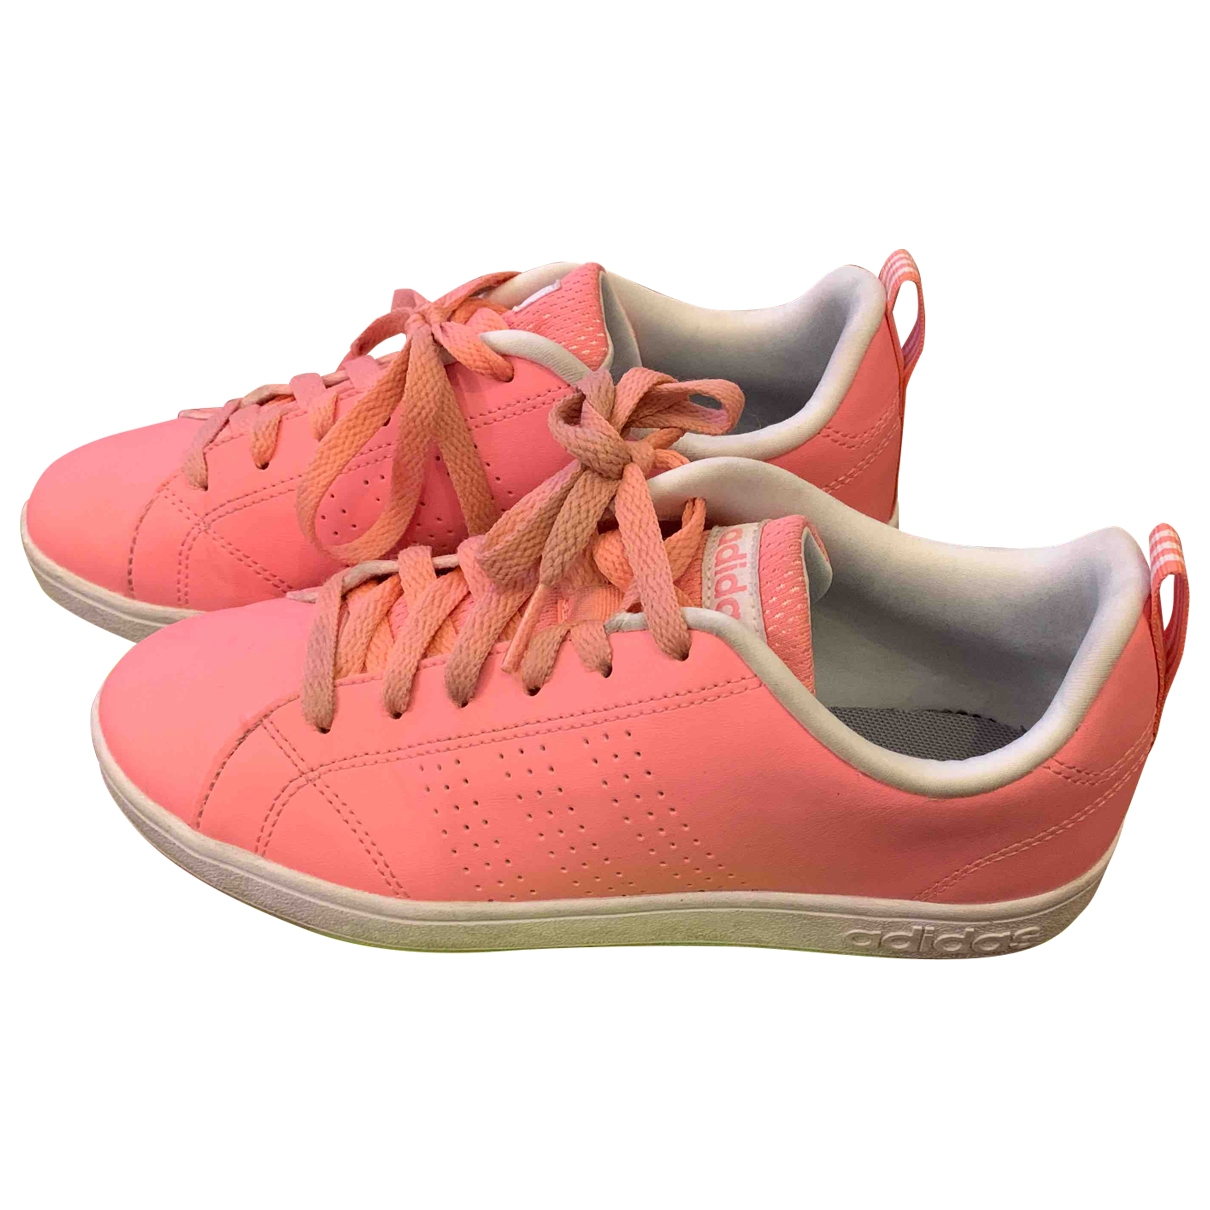 Adidas Stan Smith Sneakers in  Rosa Leder